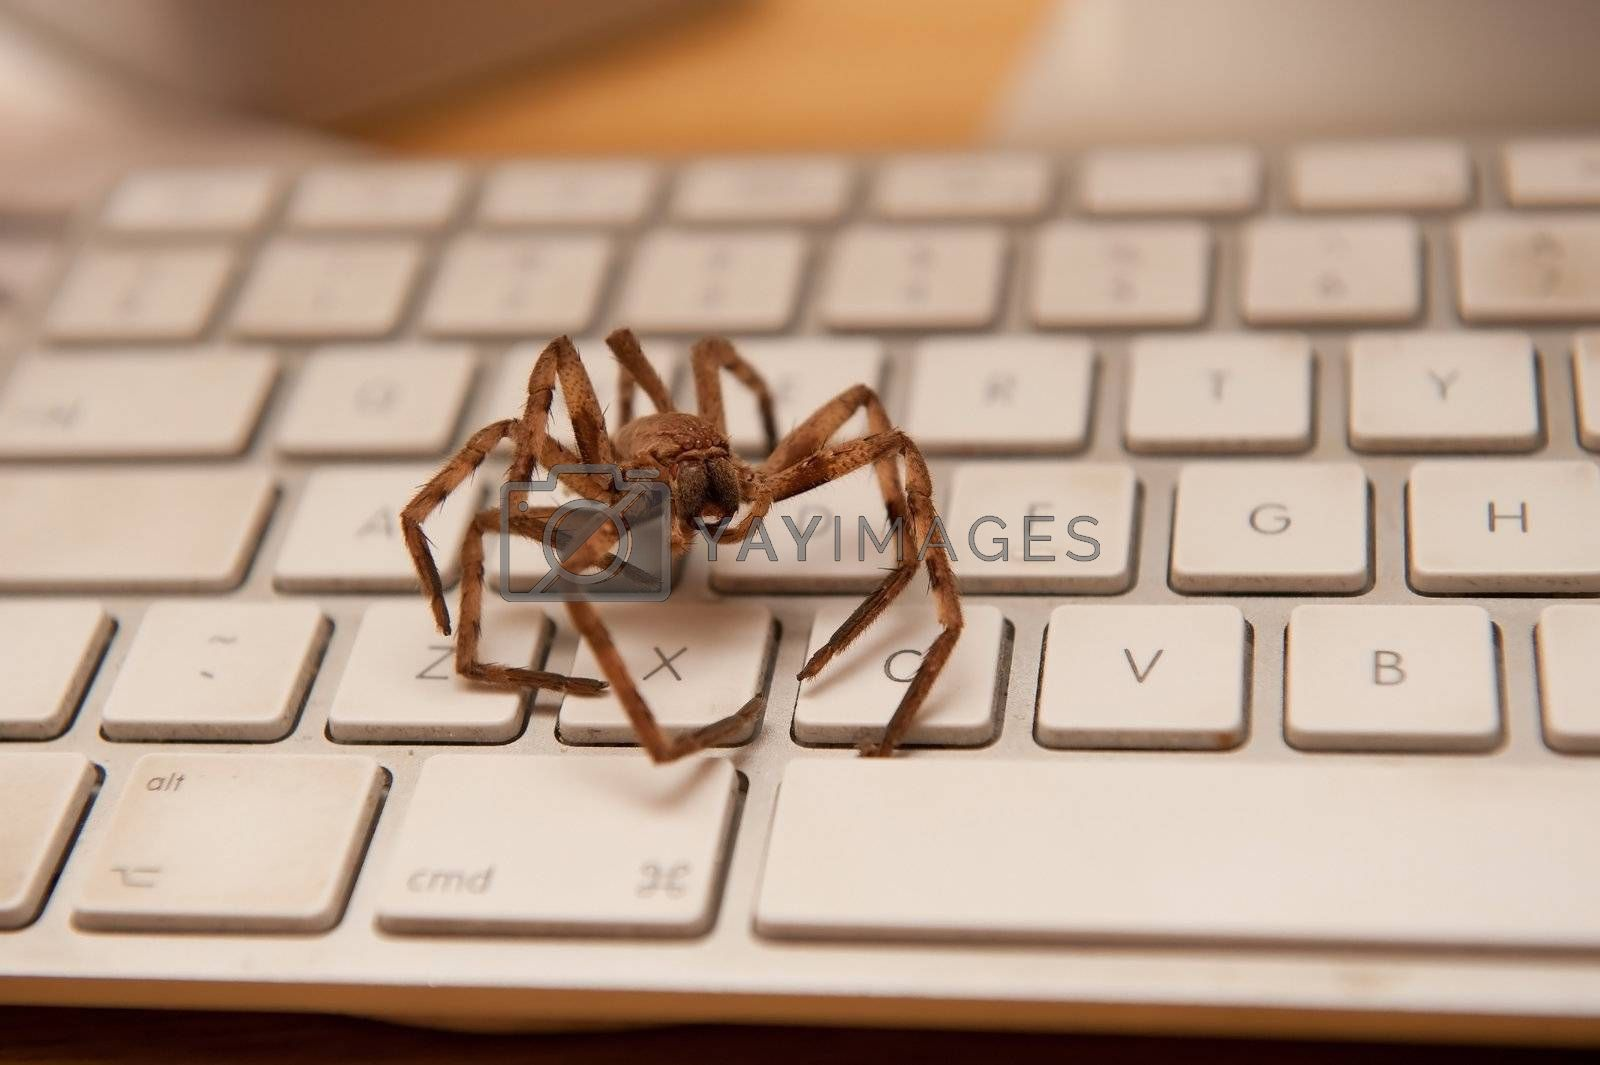 a big brown spider on a white keyboard